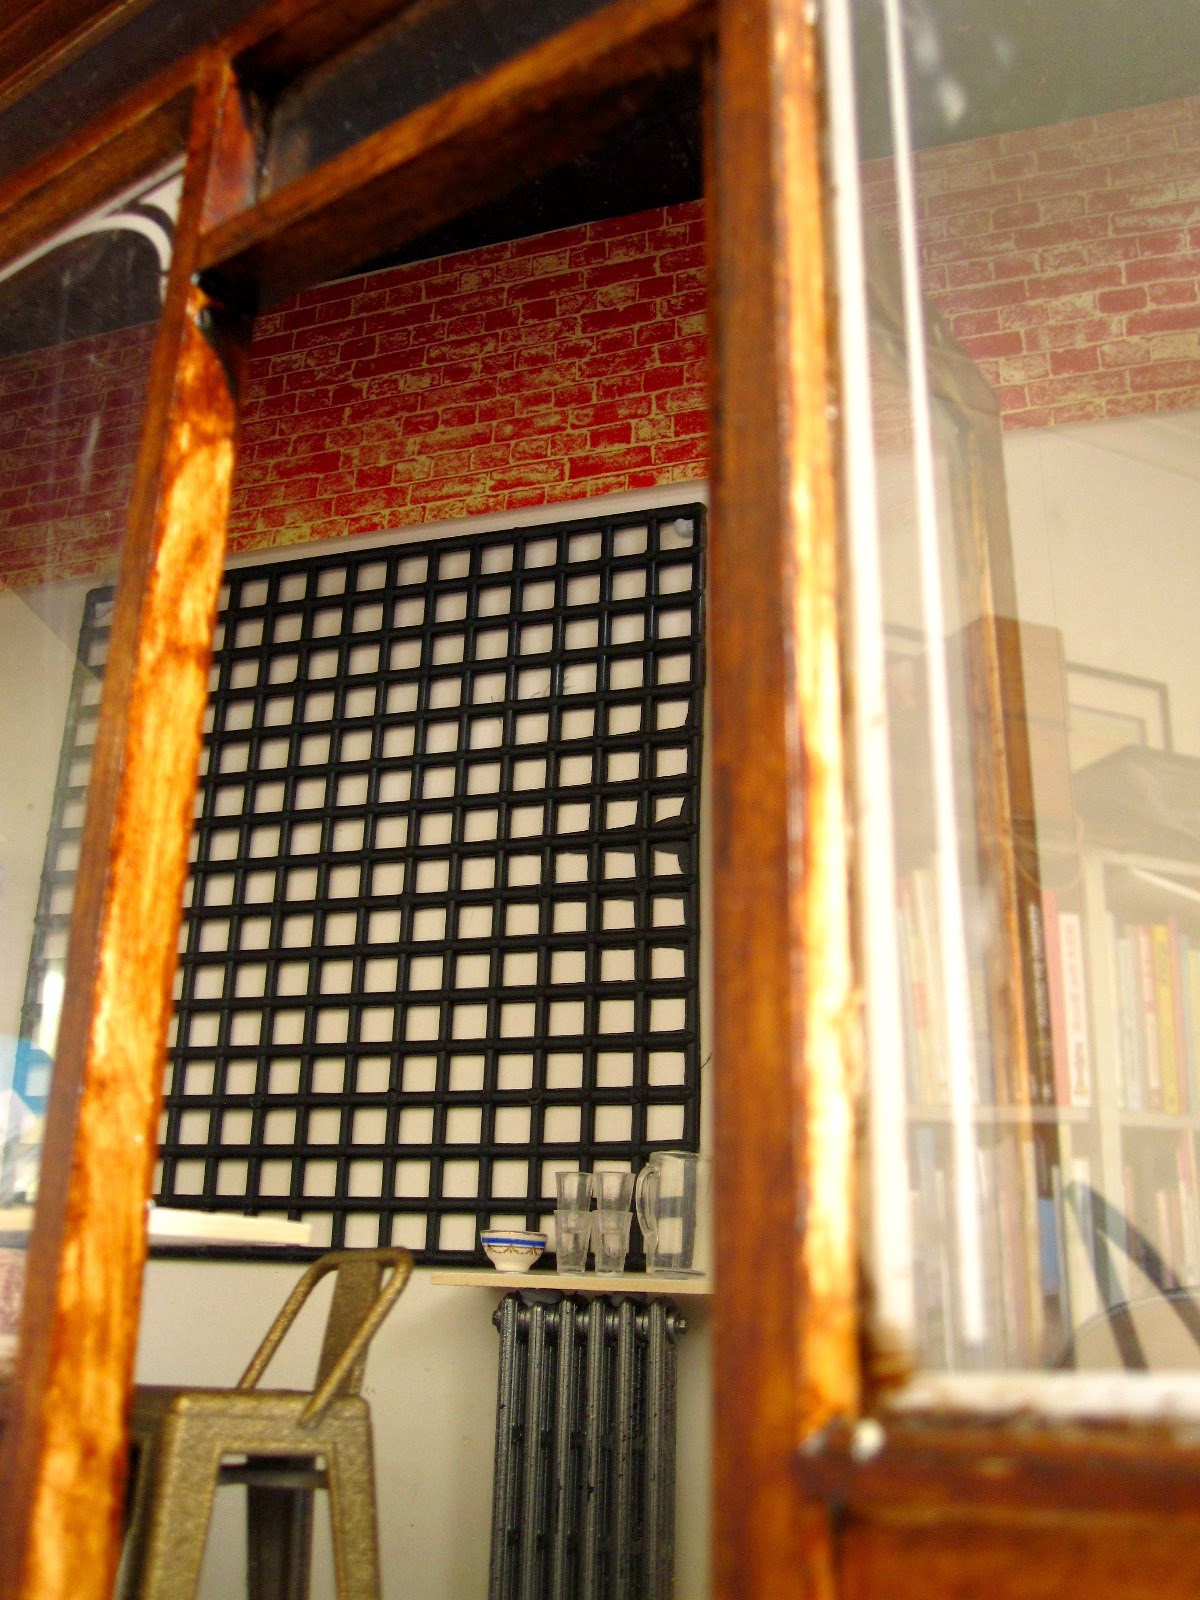 Interior view of a modern dolls' house miniautre cafe, showing a black ceiling made of distressed boards and brick walls below it.